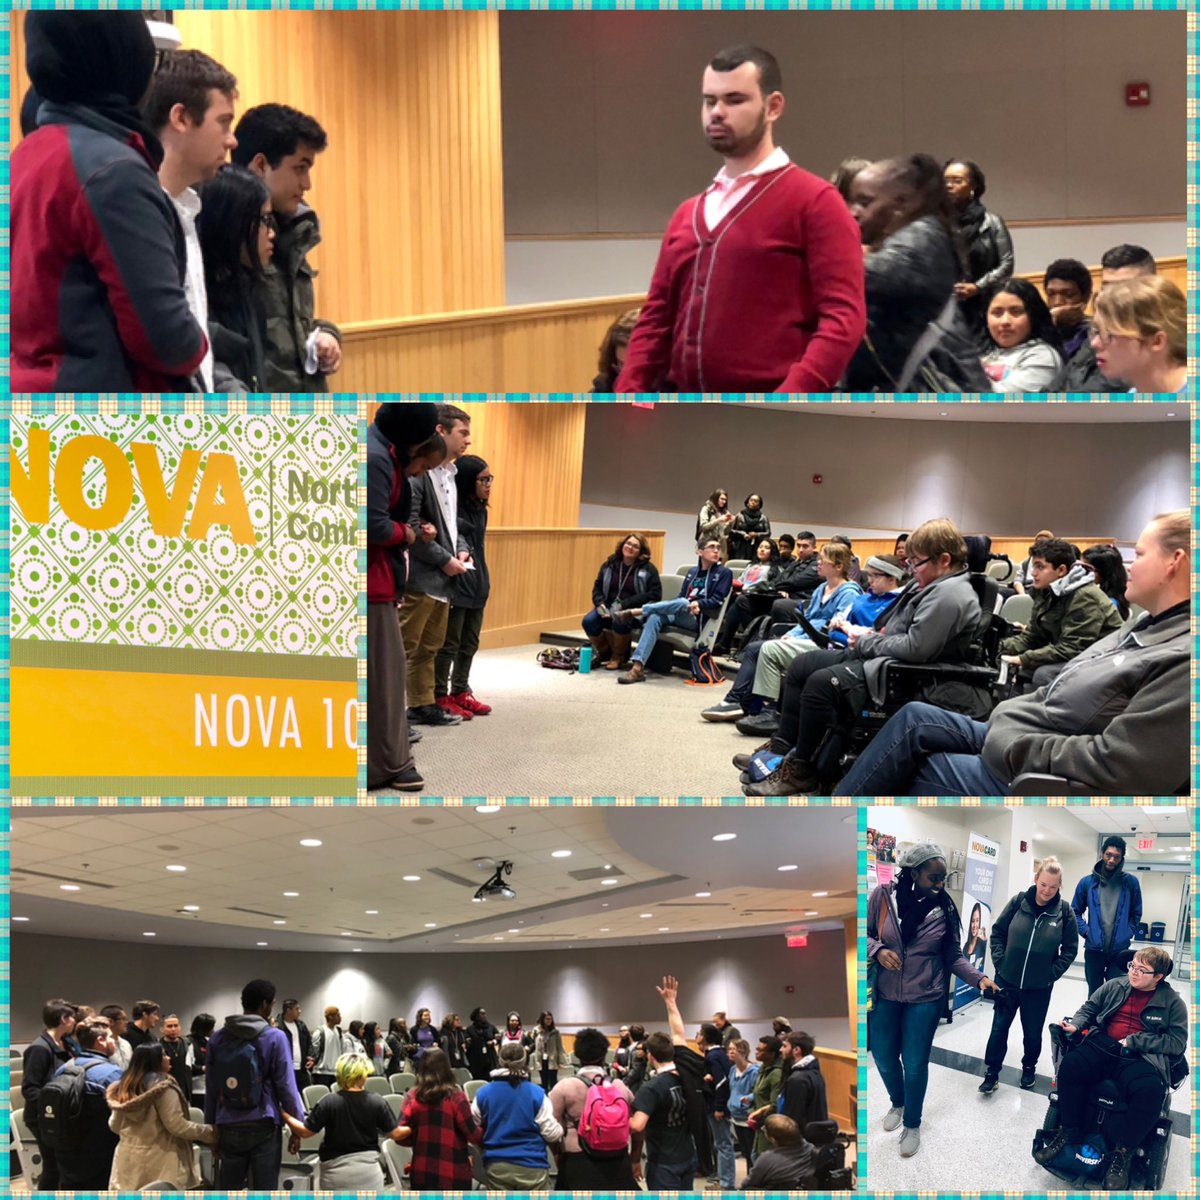 Ending our week with an informative tour of <a target='_blank' href='http://twitter.com/NOVA_AL_CAMPUS'>@NOVA_AL_CAMPUS</a> thanks to <a target='_blank' href='http://twitter.com/ACC_Partners'>@ACC_Partners</a> !  We even ran into some PEP alumni! <a target='_blank' href='http://twitter.com/APSCareerCenter'>@APSCareerCenter</a> <a target='_blank' href='http://twitter.com/ACCHilt_Inst'>@ACCHilt_Inst</a> <a target='_blank' href='http://twitter.com/arlingtontechcc'>@arlingtontechcc</a> <a target='_blank' href='http://twitter.com/AcadAcademy'>@AcadAcademy</a> <a target='_blank' href='http://twitter.com/Margaretchungcc'>@Margaretchungcc</a> <a target='_blank' href='http://twitter.com/MsBakerACC'>@MsBakerACC</a> <a target='_blank' href='http://twitter.com/APHealeyACC'>@APHealeyACC</a> <a target='_blank' href='https://t.co/0FMA30uaCN'>https://t.co/0FMA30uaCN</a>